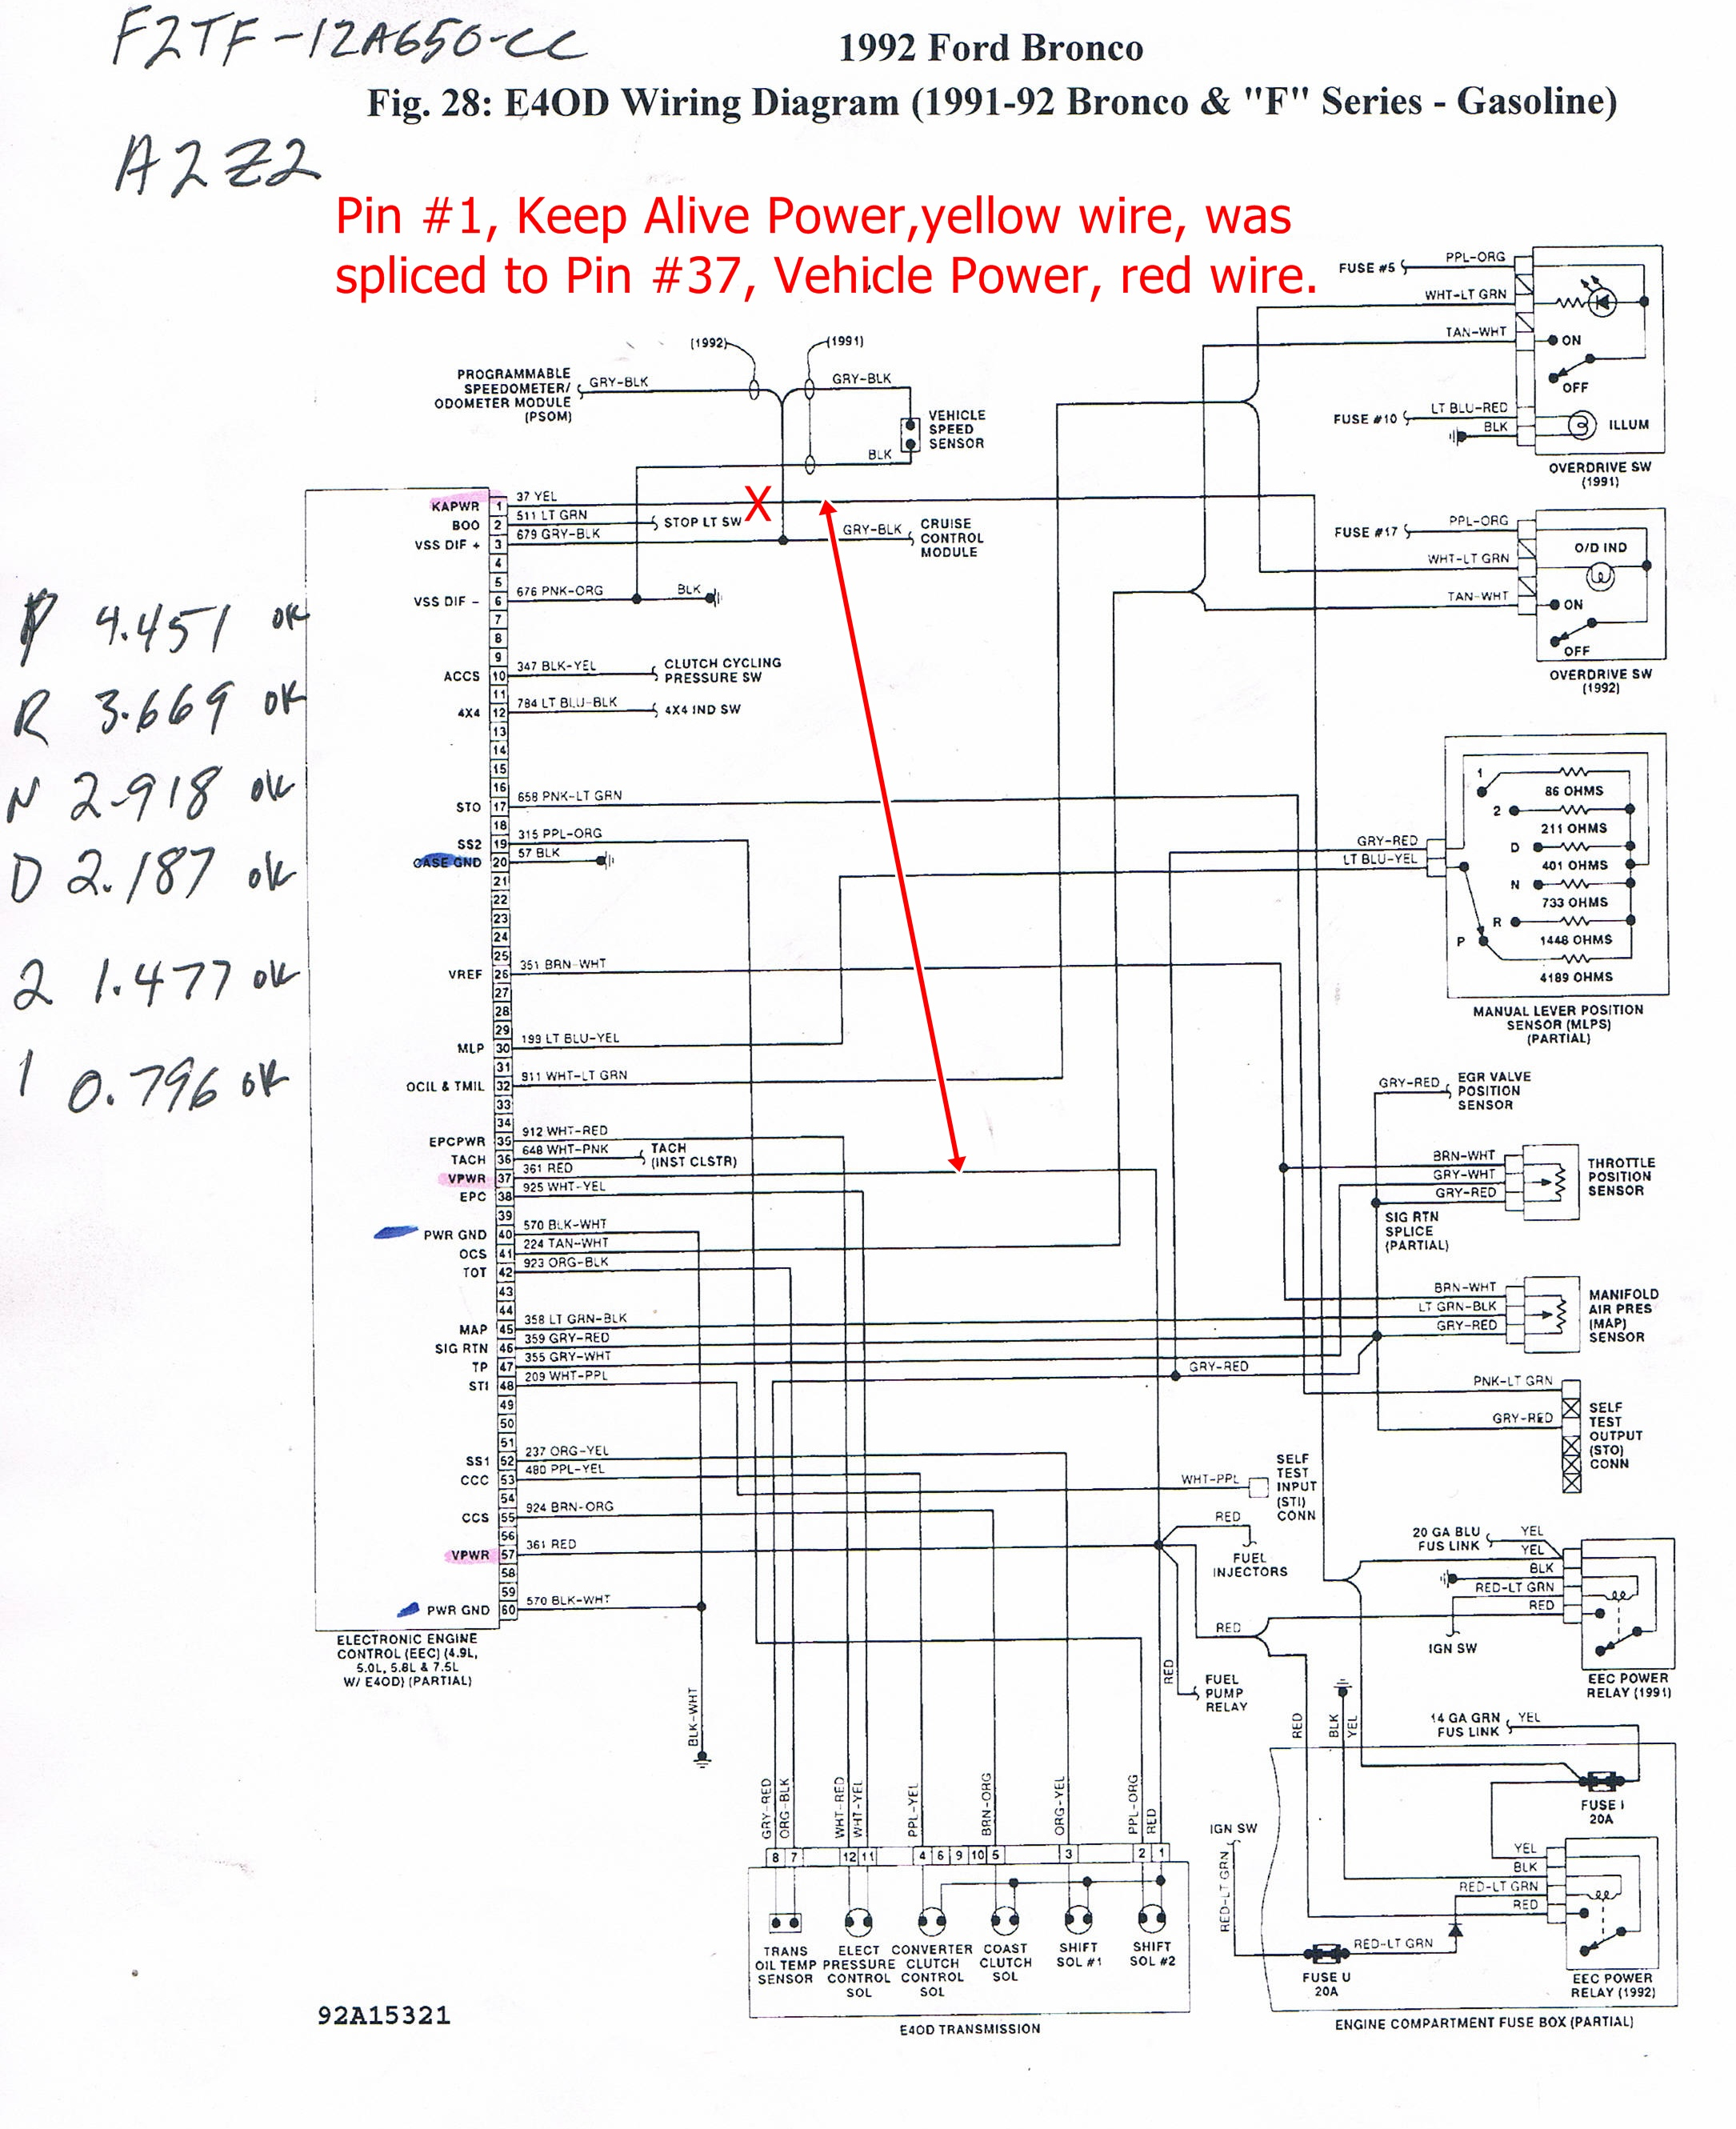 Wire Diagram on Hydraulic Pump Solenoid Wiring Diagram Electrical Diagrams Jpg